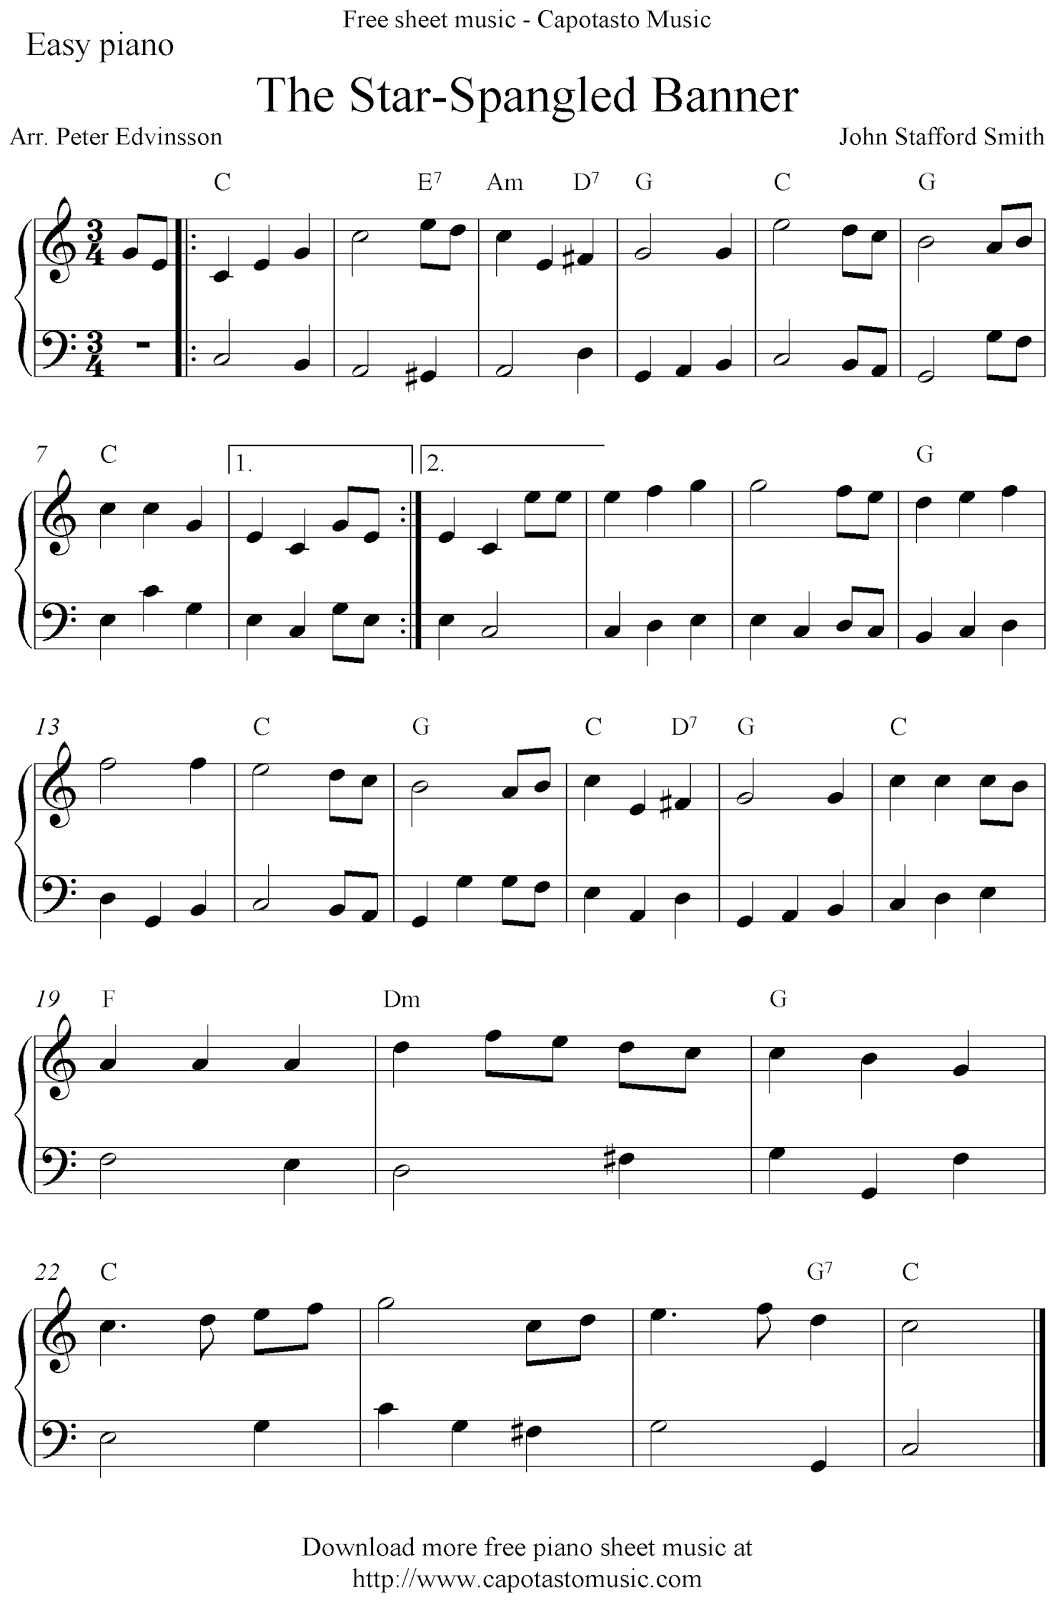 Easy Free Piano Sheet Music Solo Arrangementpeter Edvinsson Of - Free Printable Piano Sheet Music For The Star Spangled Banner